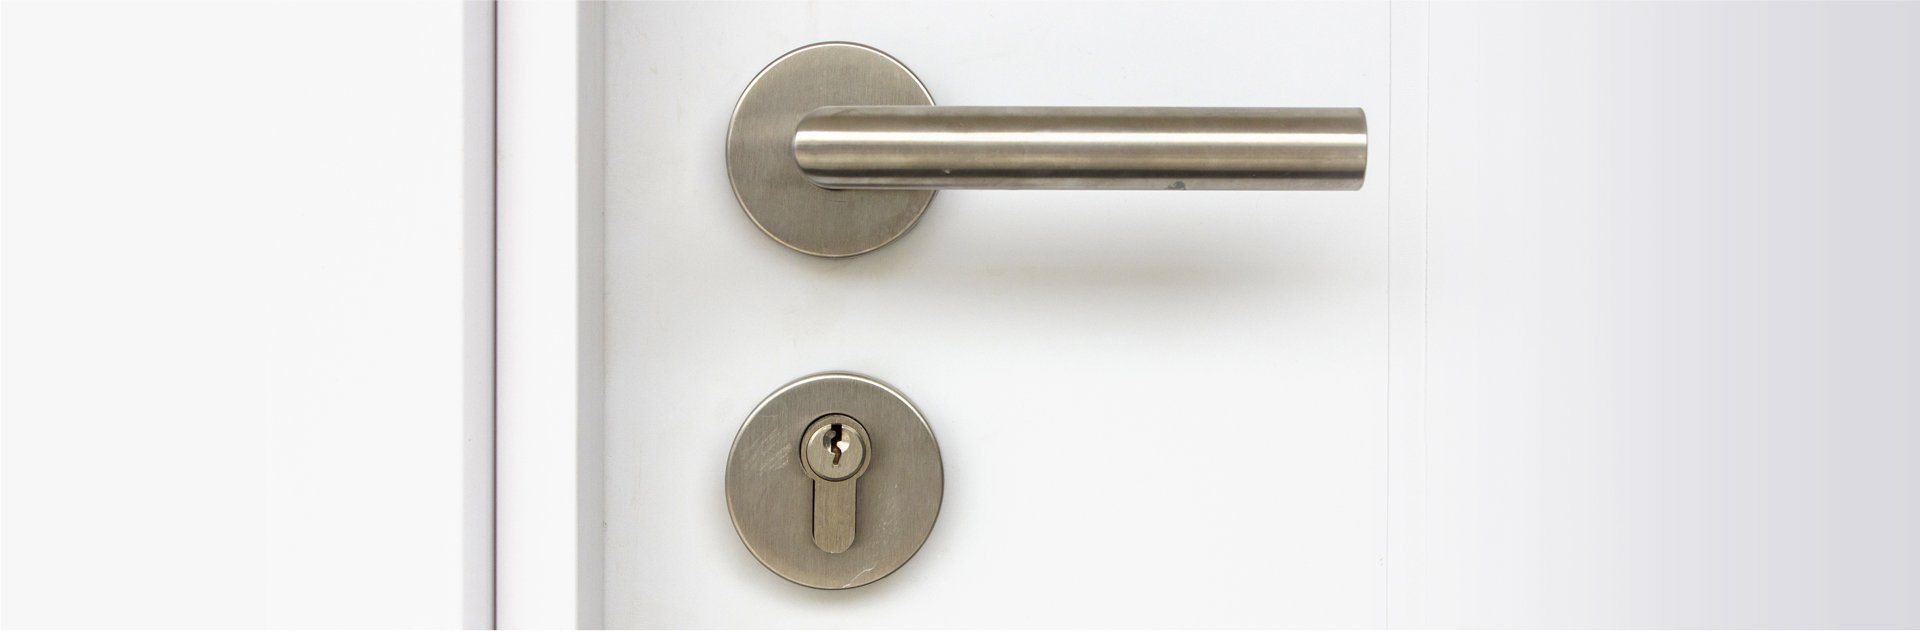 Ironmongery products in Bow